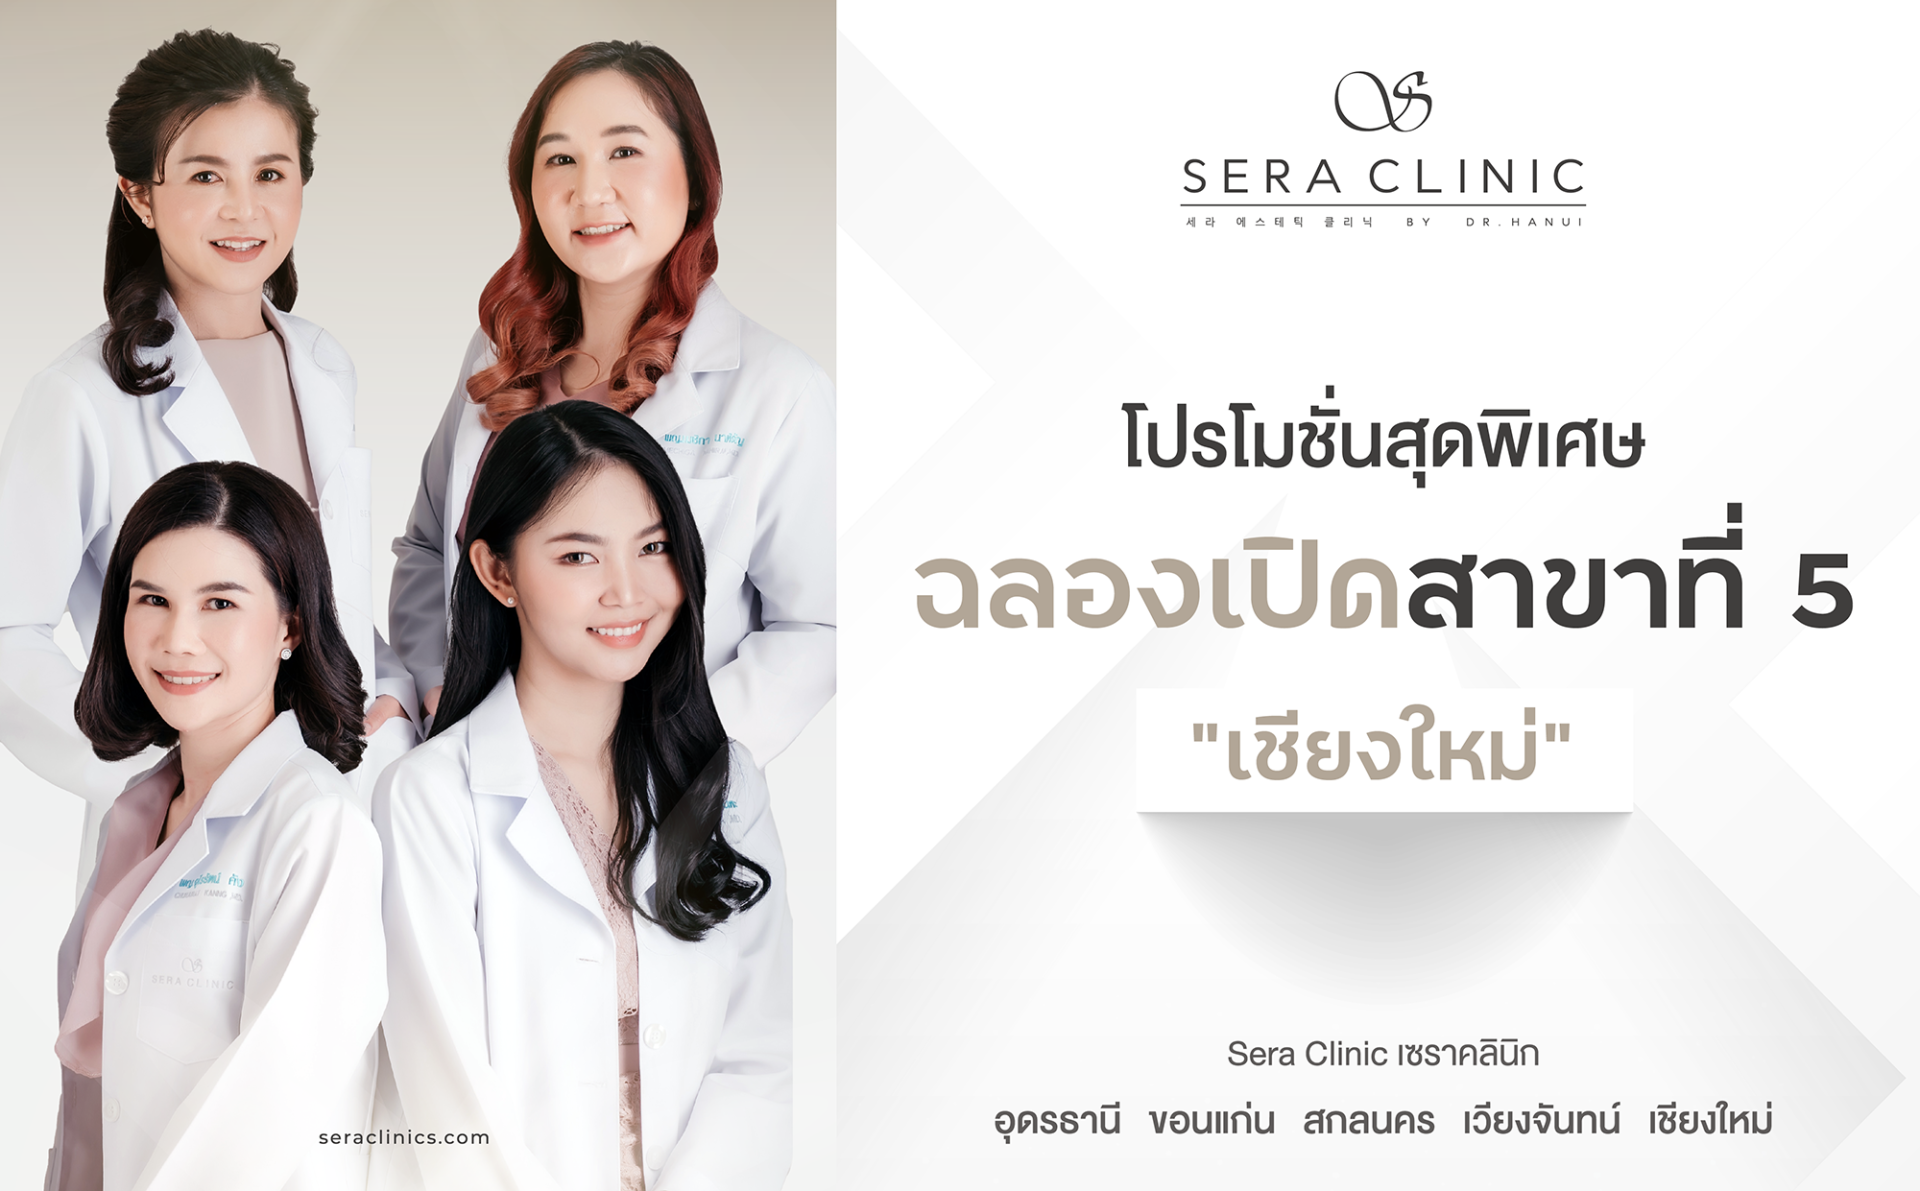 Sera Clinic Grand Opening Promotion For Chiang Mai Branch